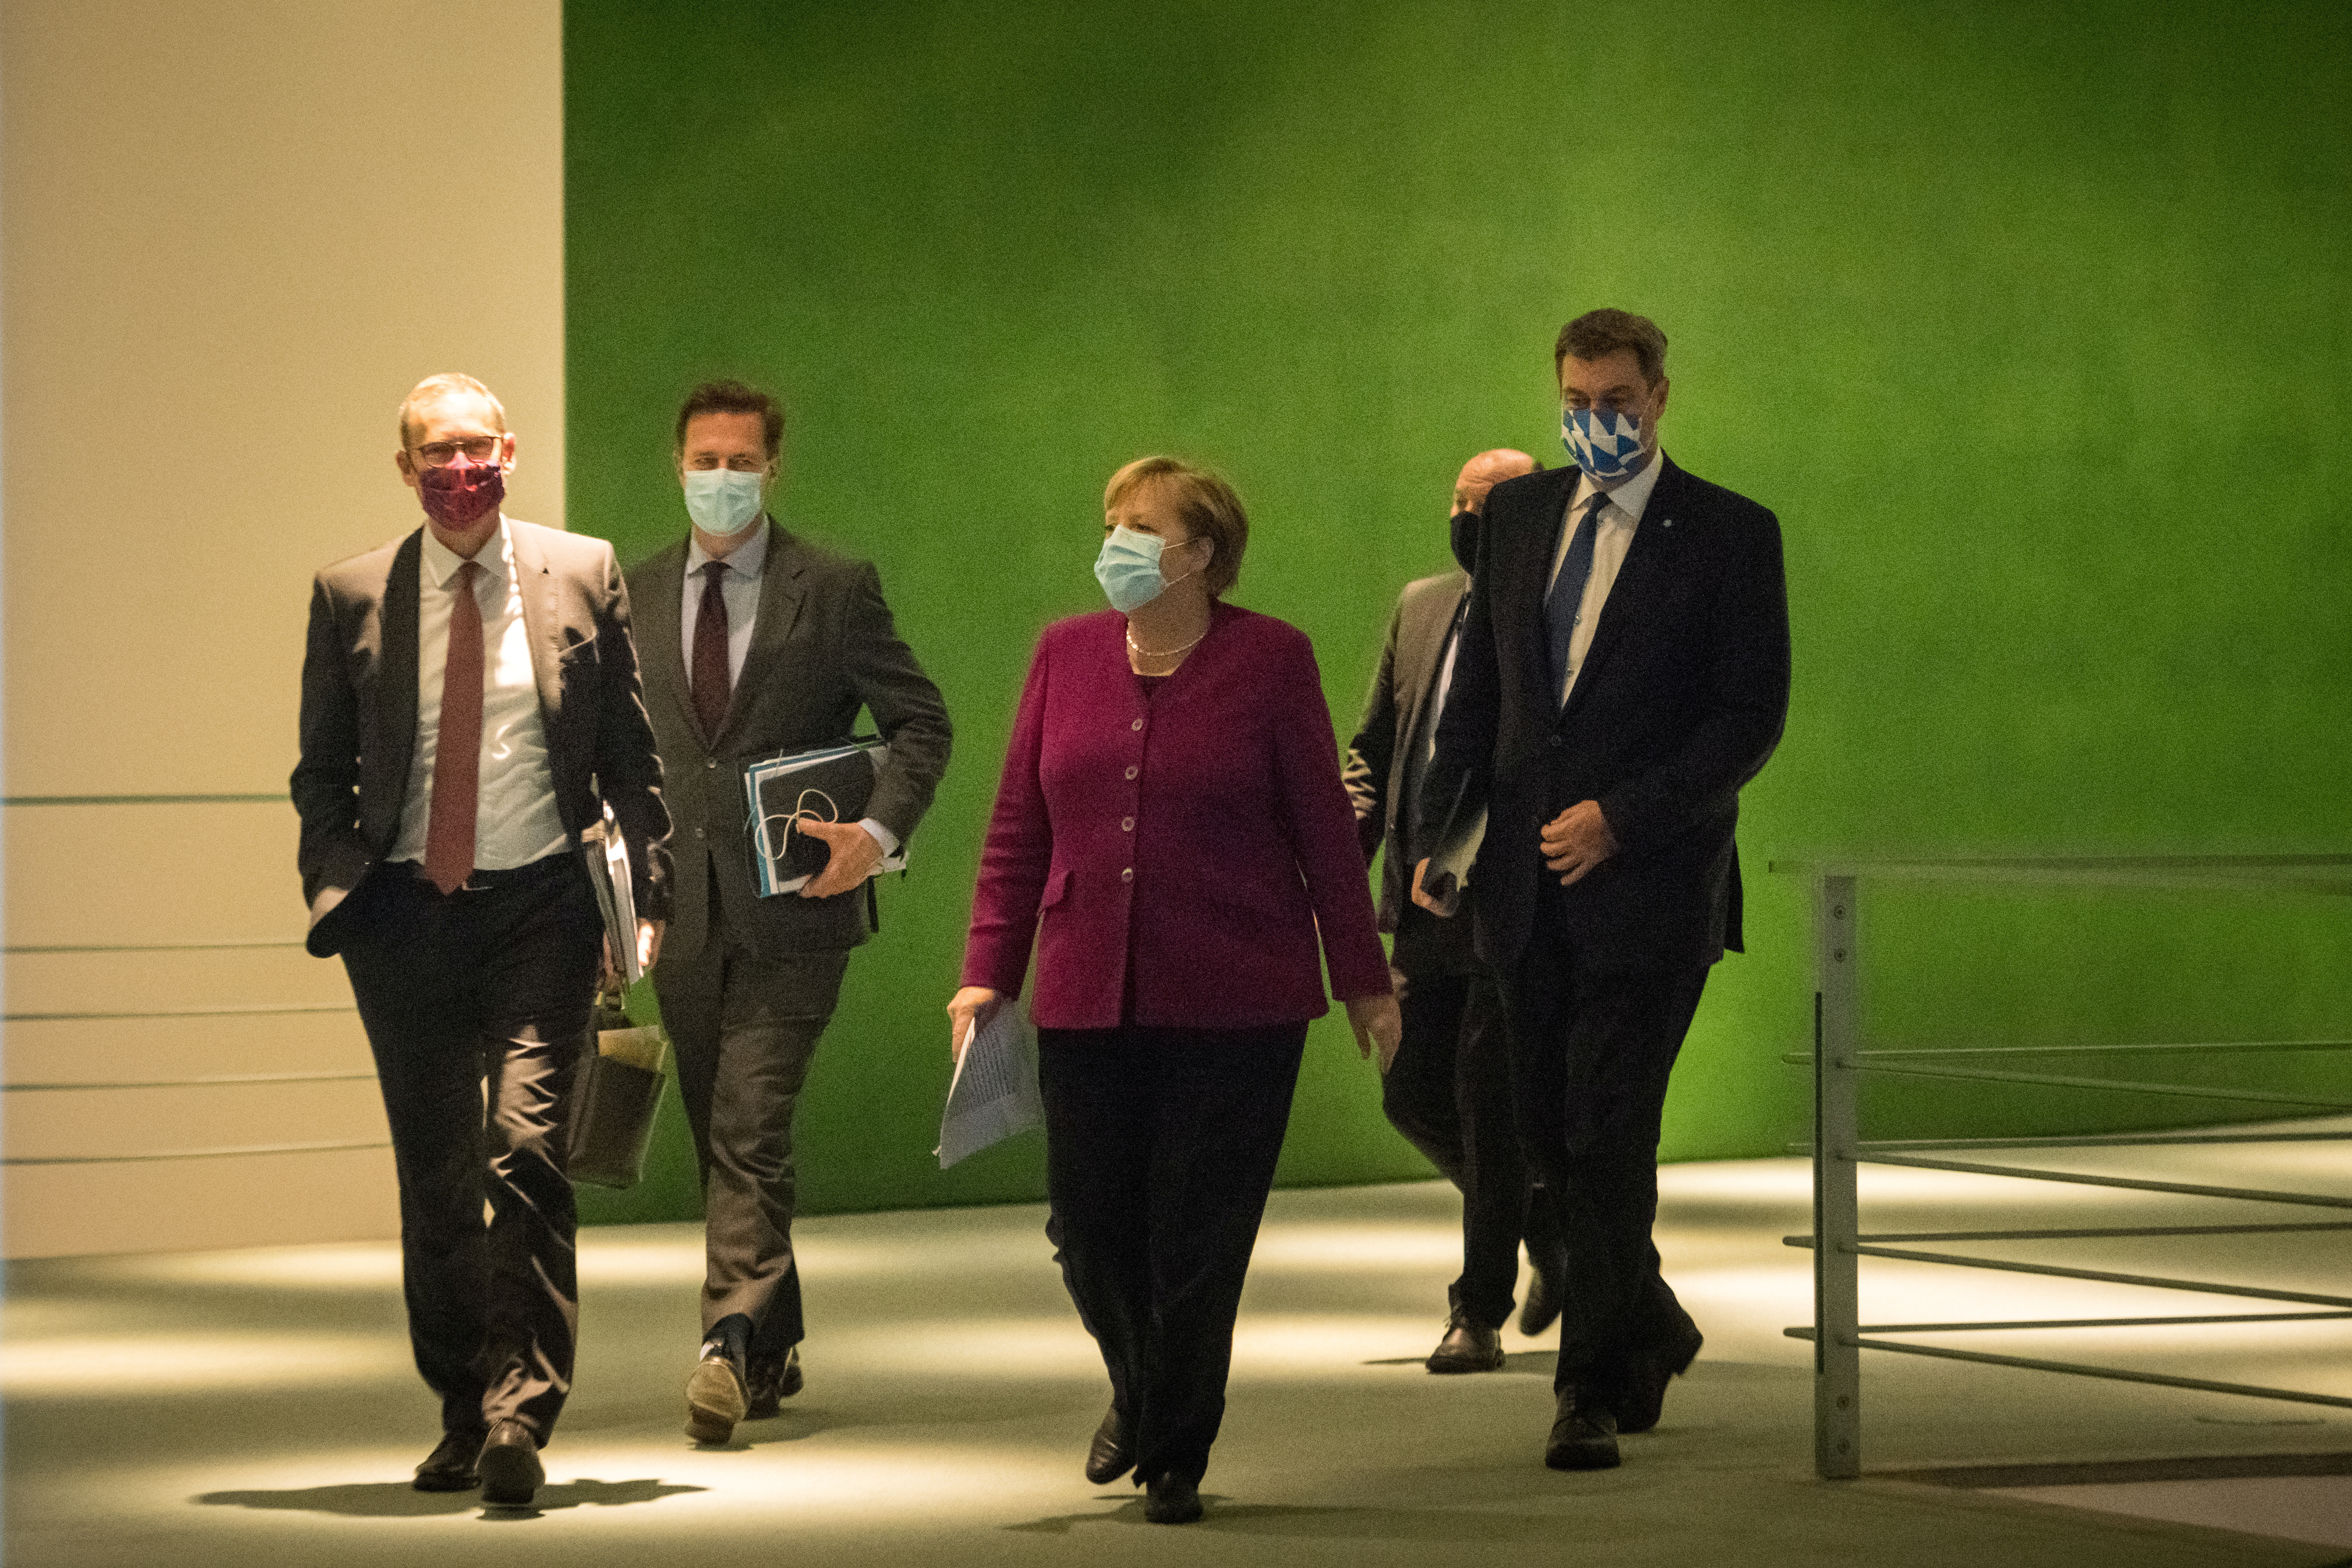 German Chancellor Angela Merkel , Bavaria's State Premier Markus Soeder and Berlin's mayor Michael Mueller arrive to give a press conference after a meeting of states' leaders on the coronavirus situation in Berlin on October 14, 2020. Stefanie Loos/Pool via REUTERS - RC2MIJ9ZNK58